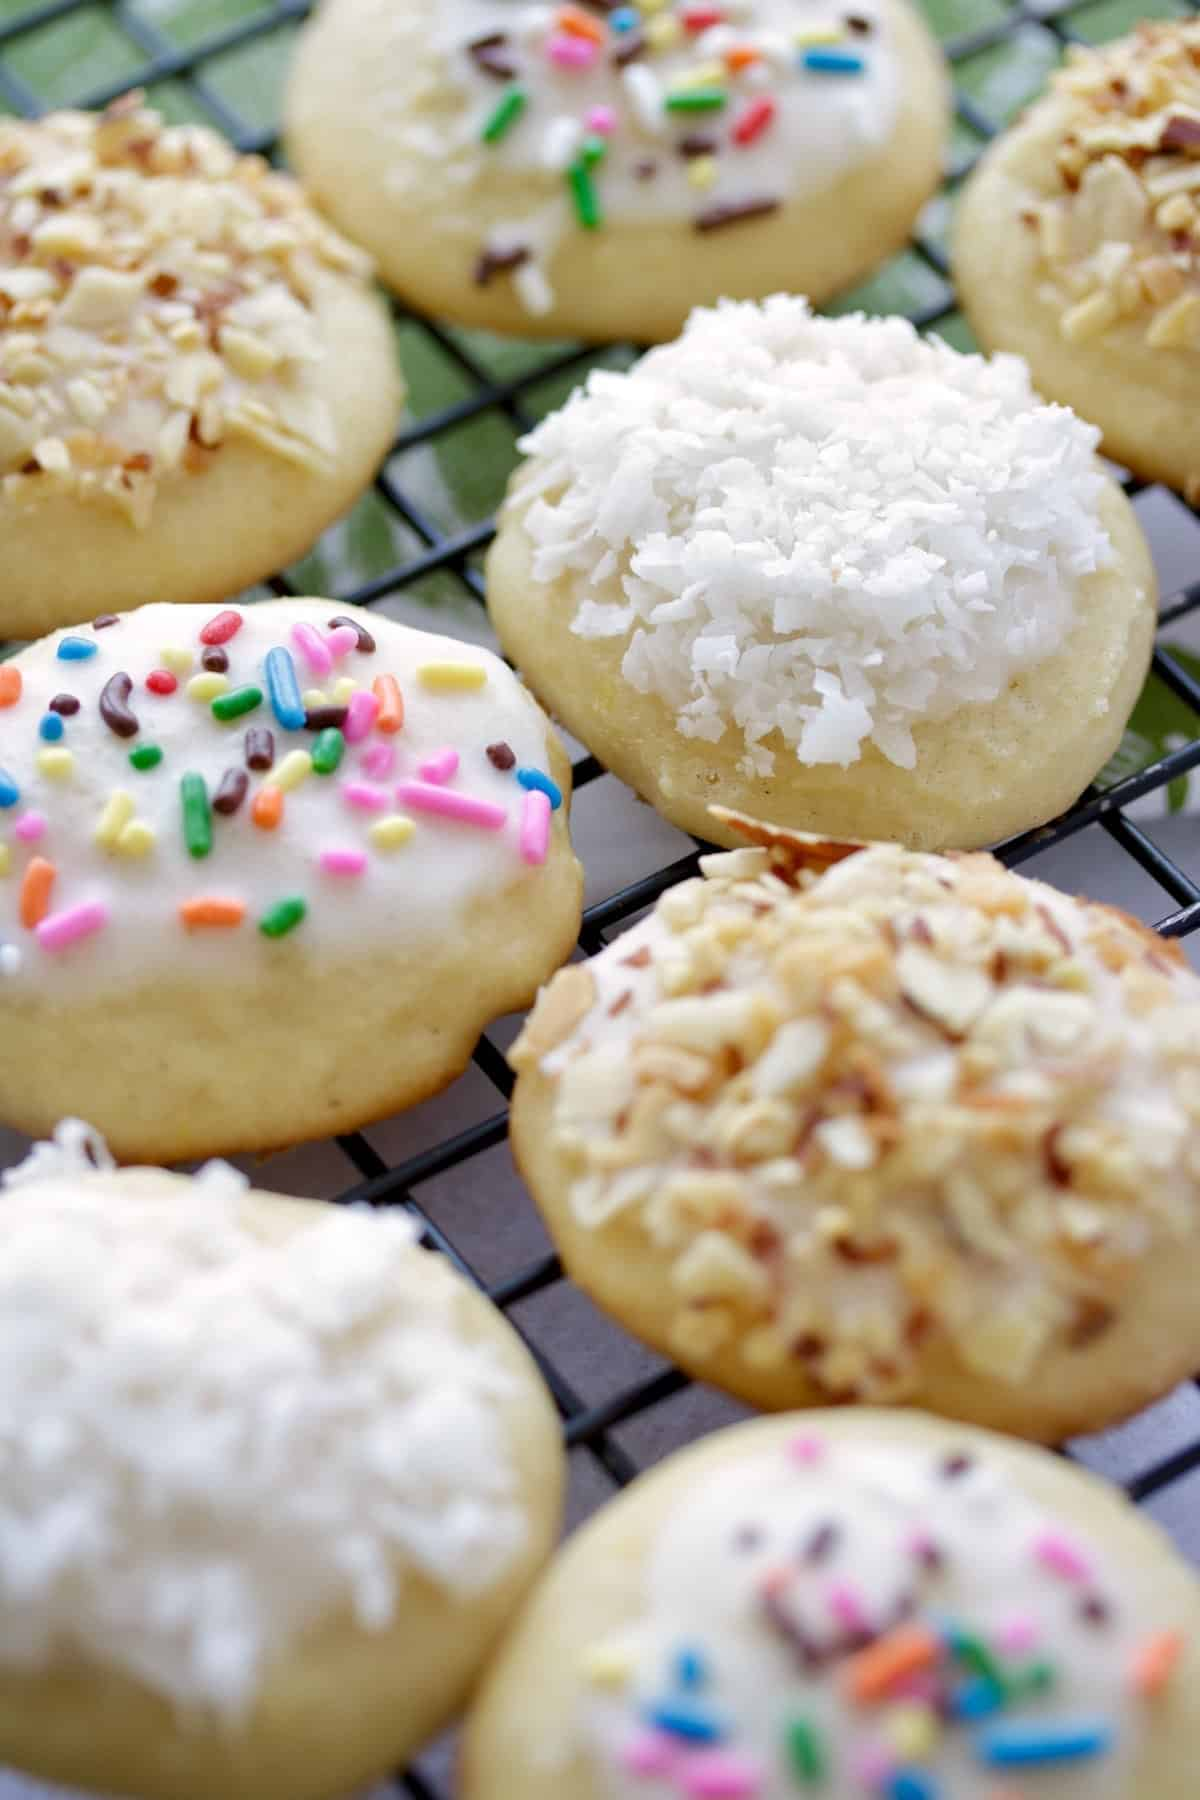 Italian cookies with sprinkles and coconut